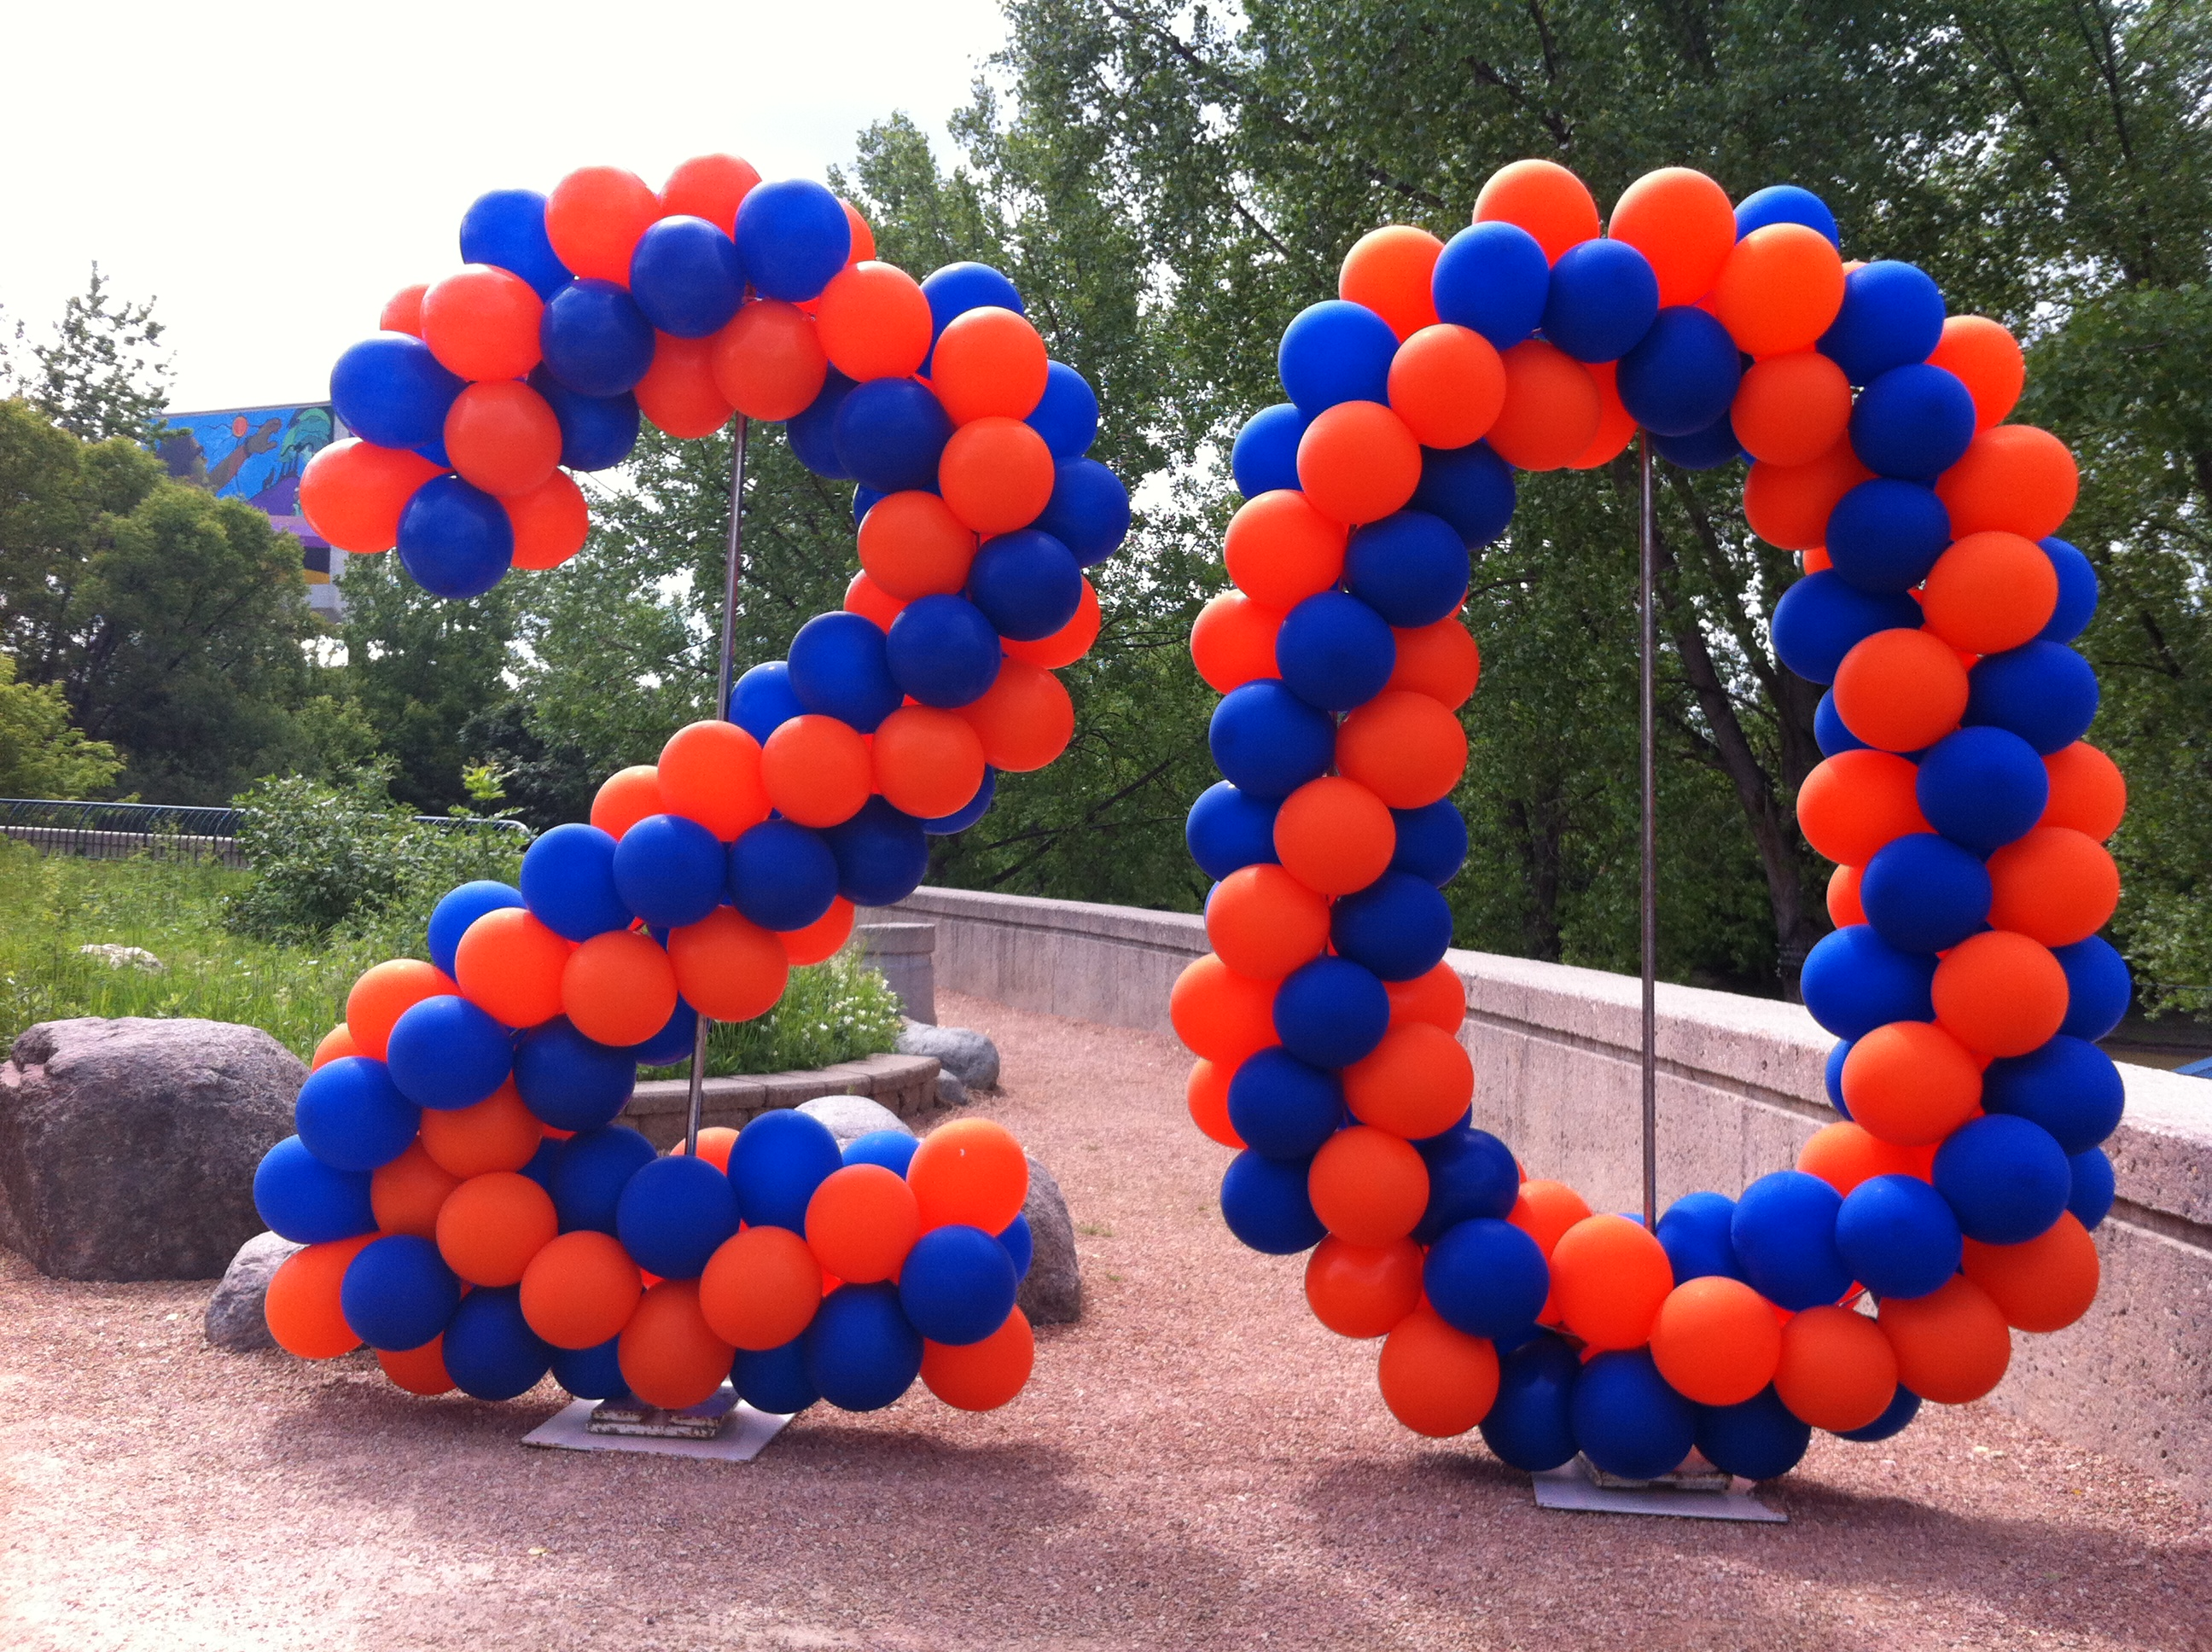 Number balloon sculpture